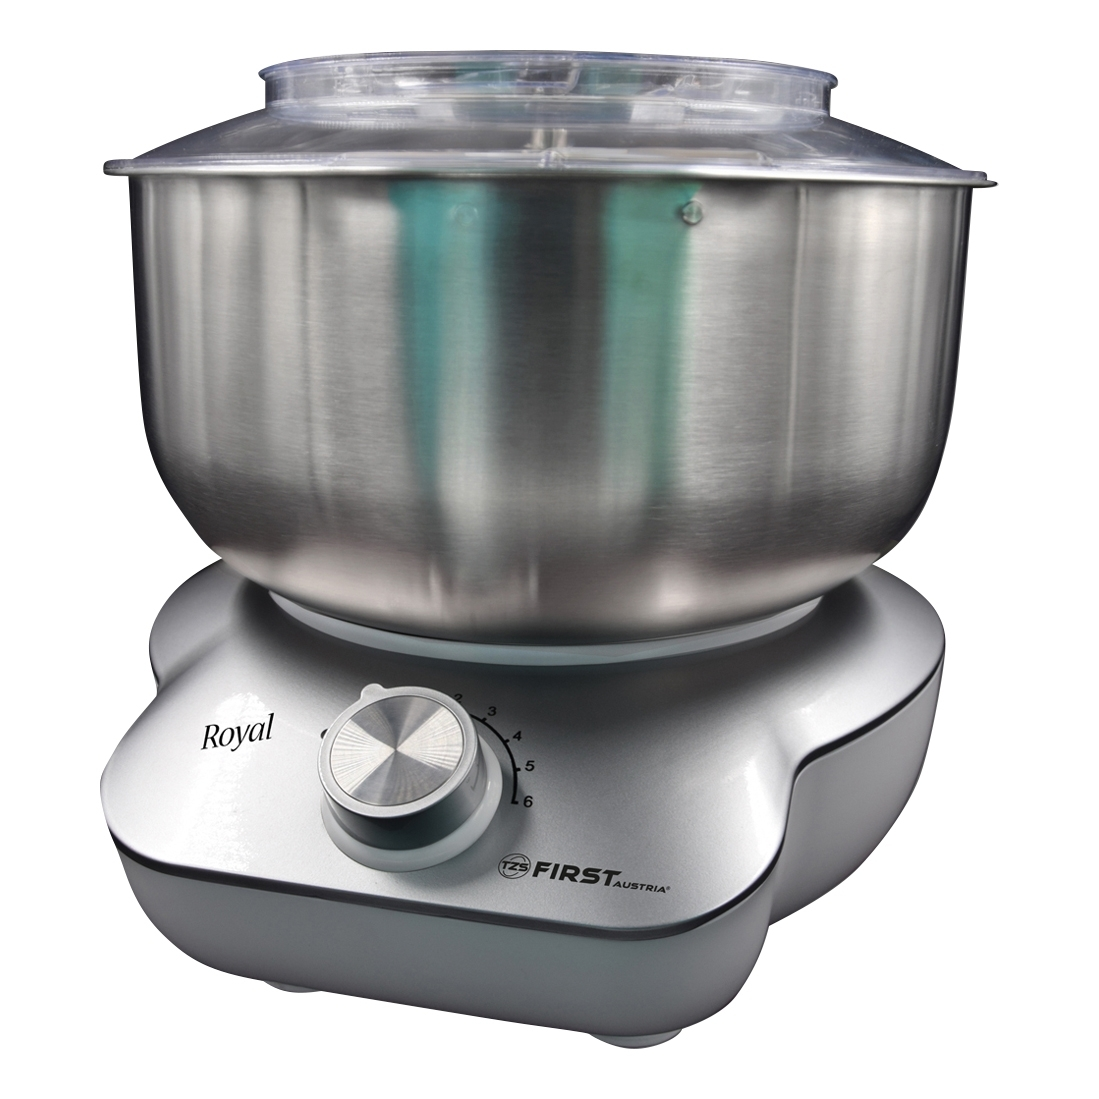 Mixer FIRST FA-5259-2-SI (power 800 W, 6-speed bowl 5 l cover protection spray) mixer ariete 1594 00 in 650 w 6 speed bowl 4 l stainless steel